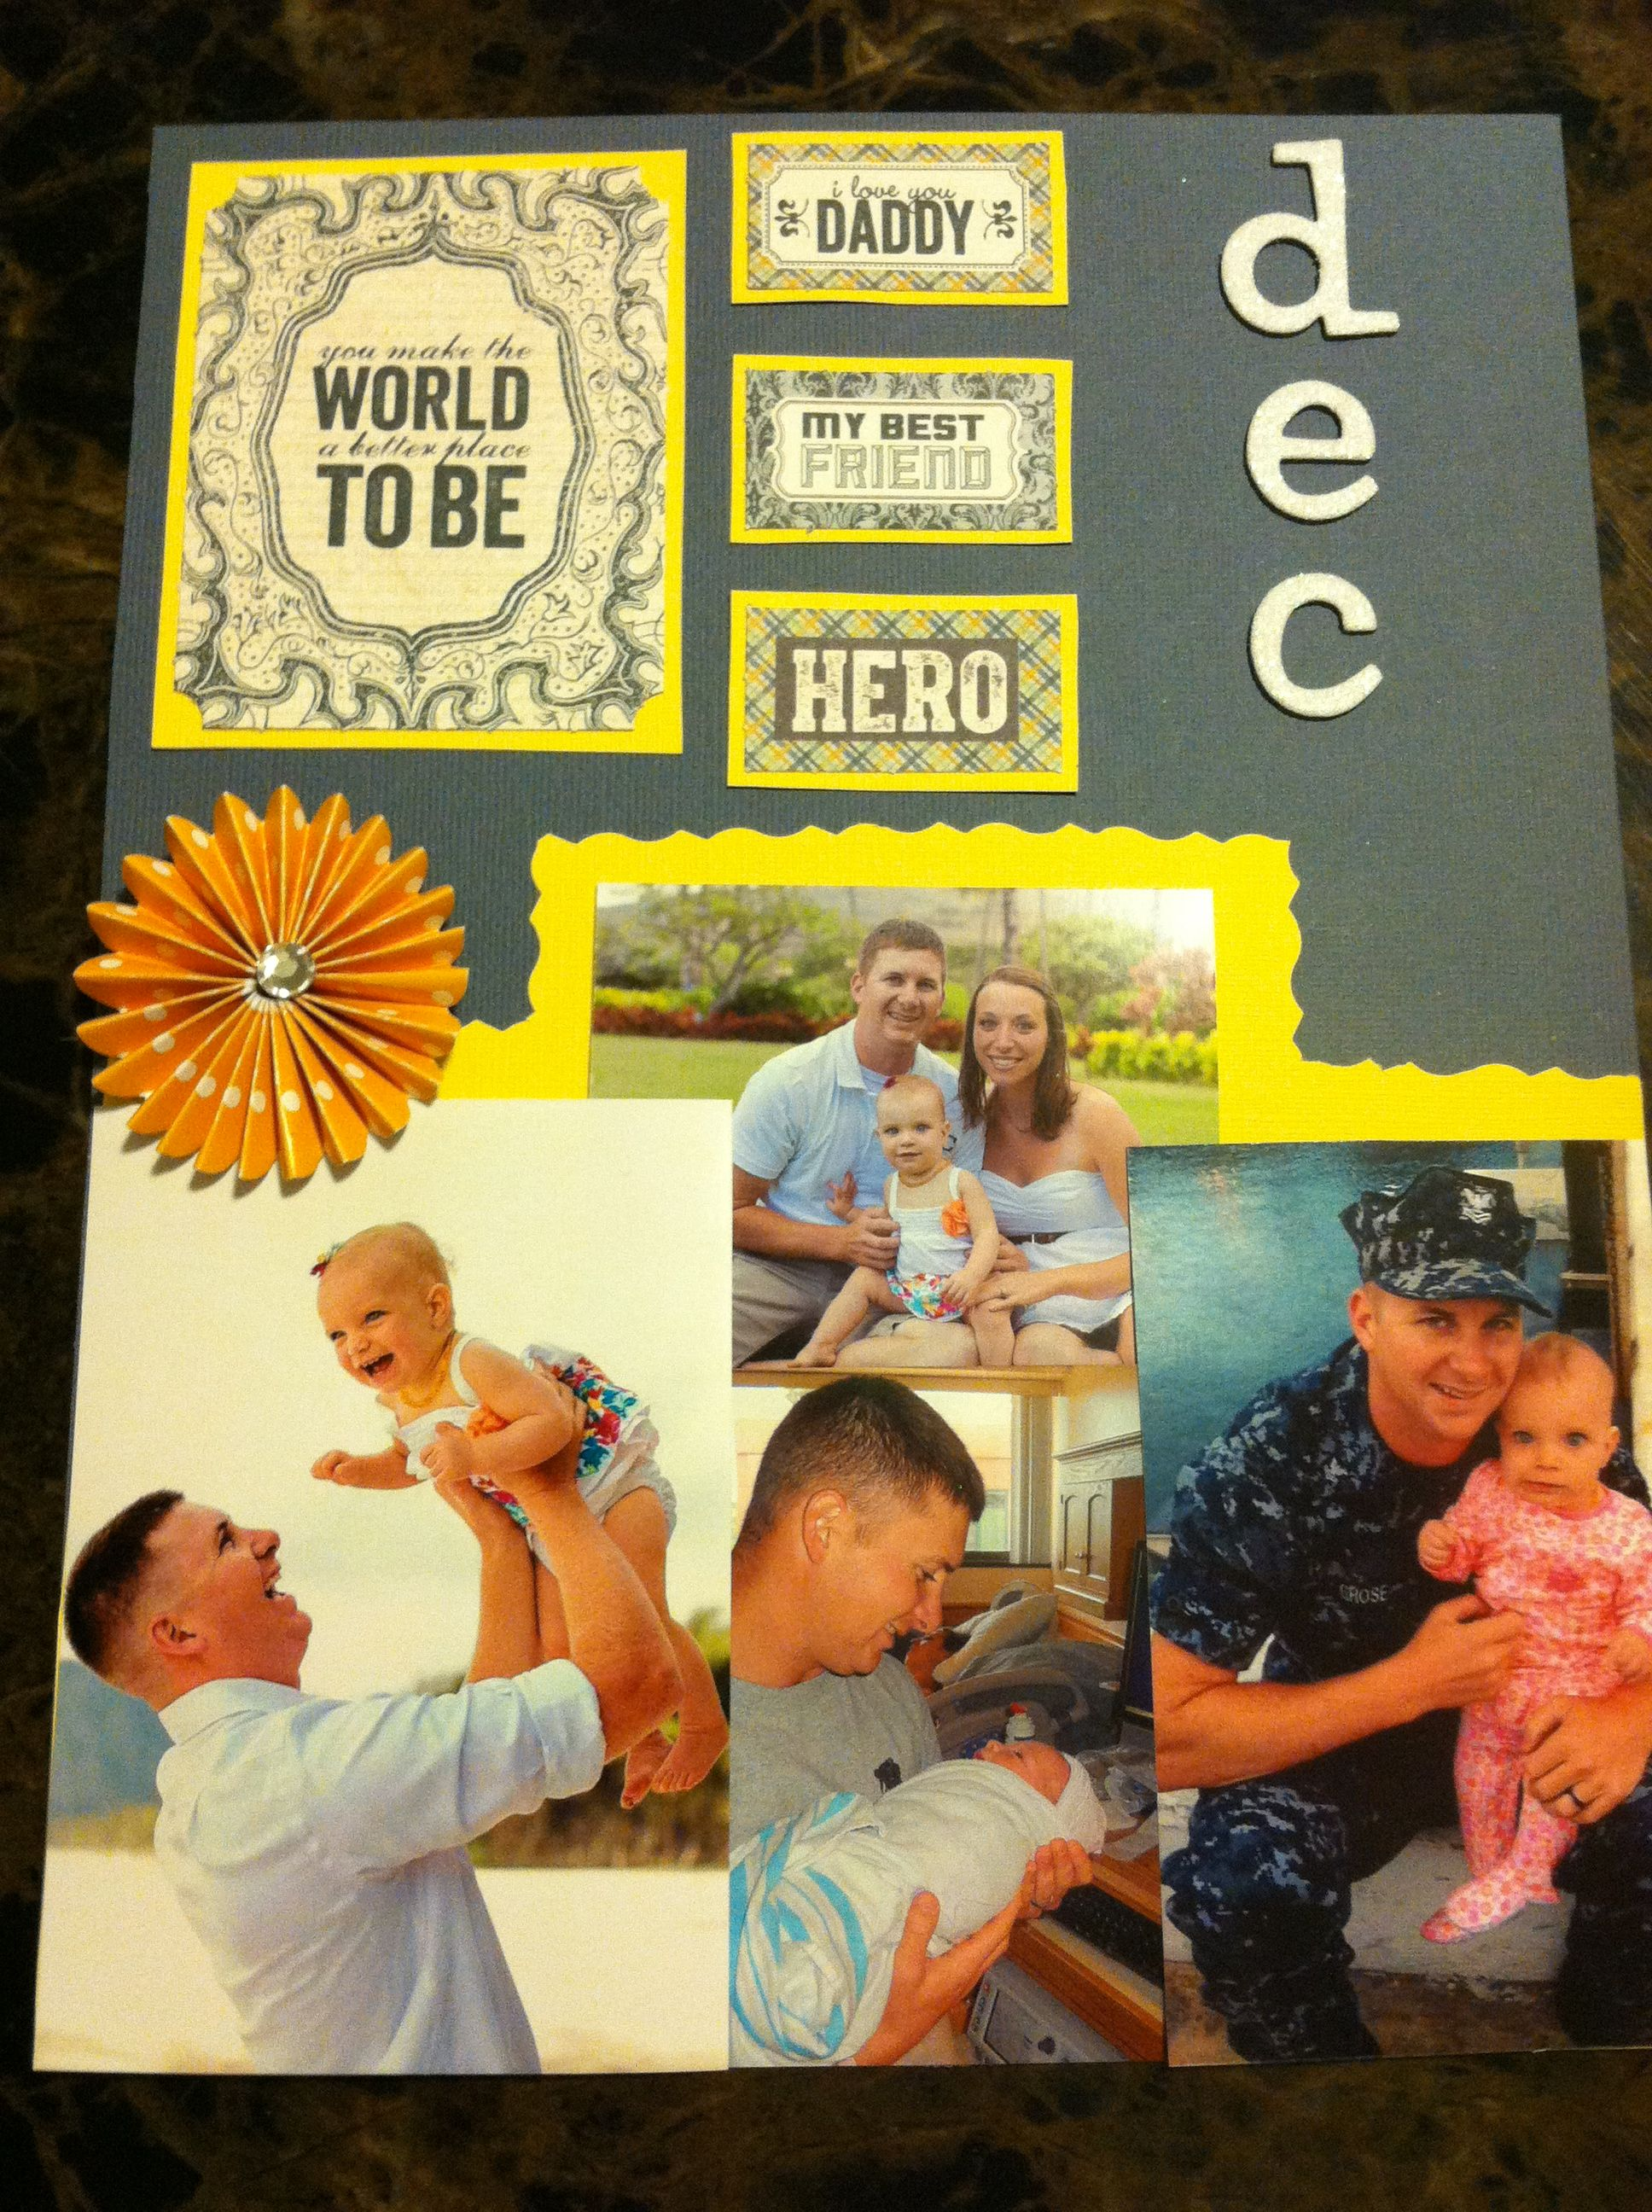 Calendar Square Ideas : Calendar square best daddy ever deployment homecoming